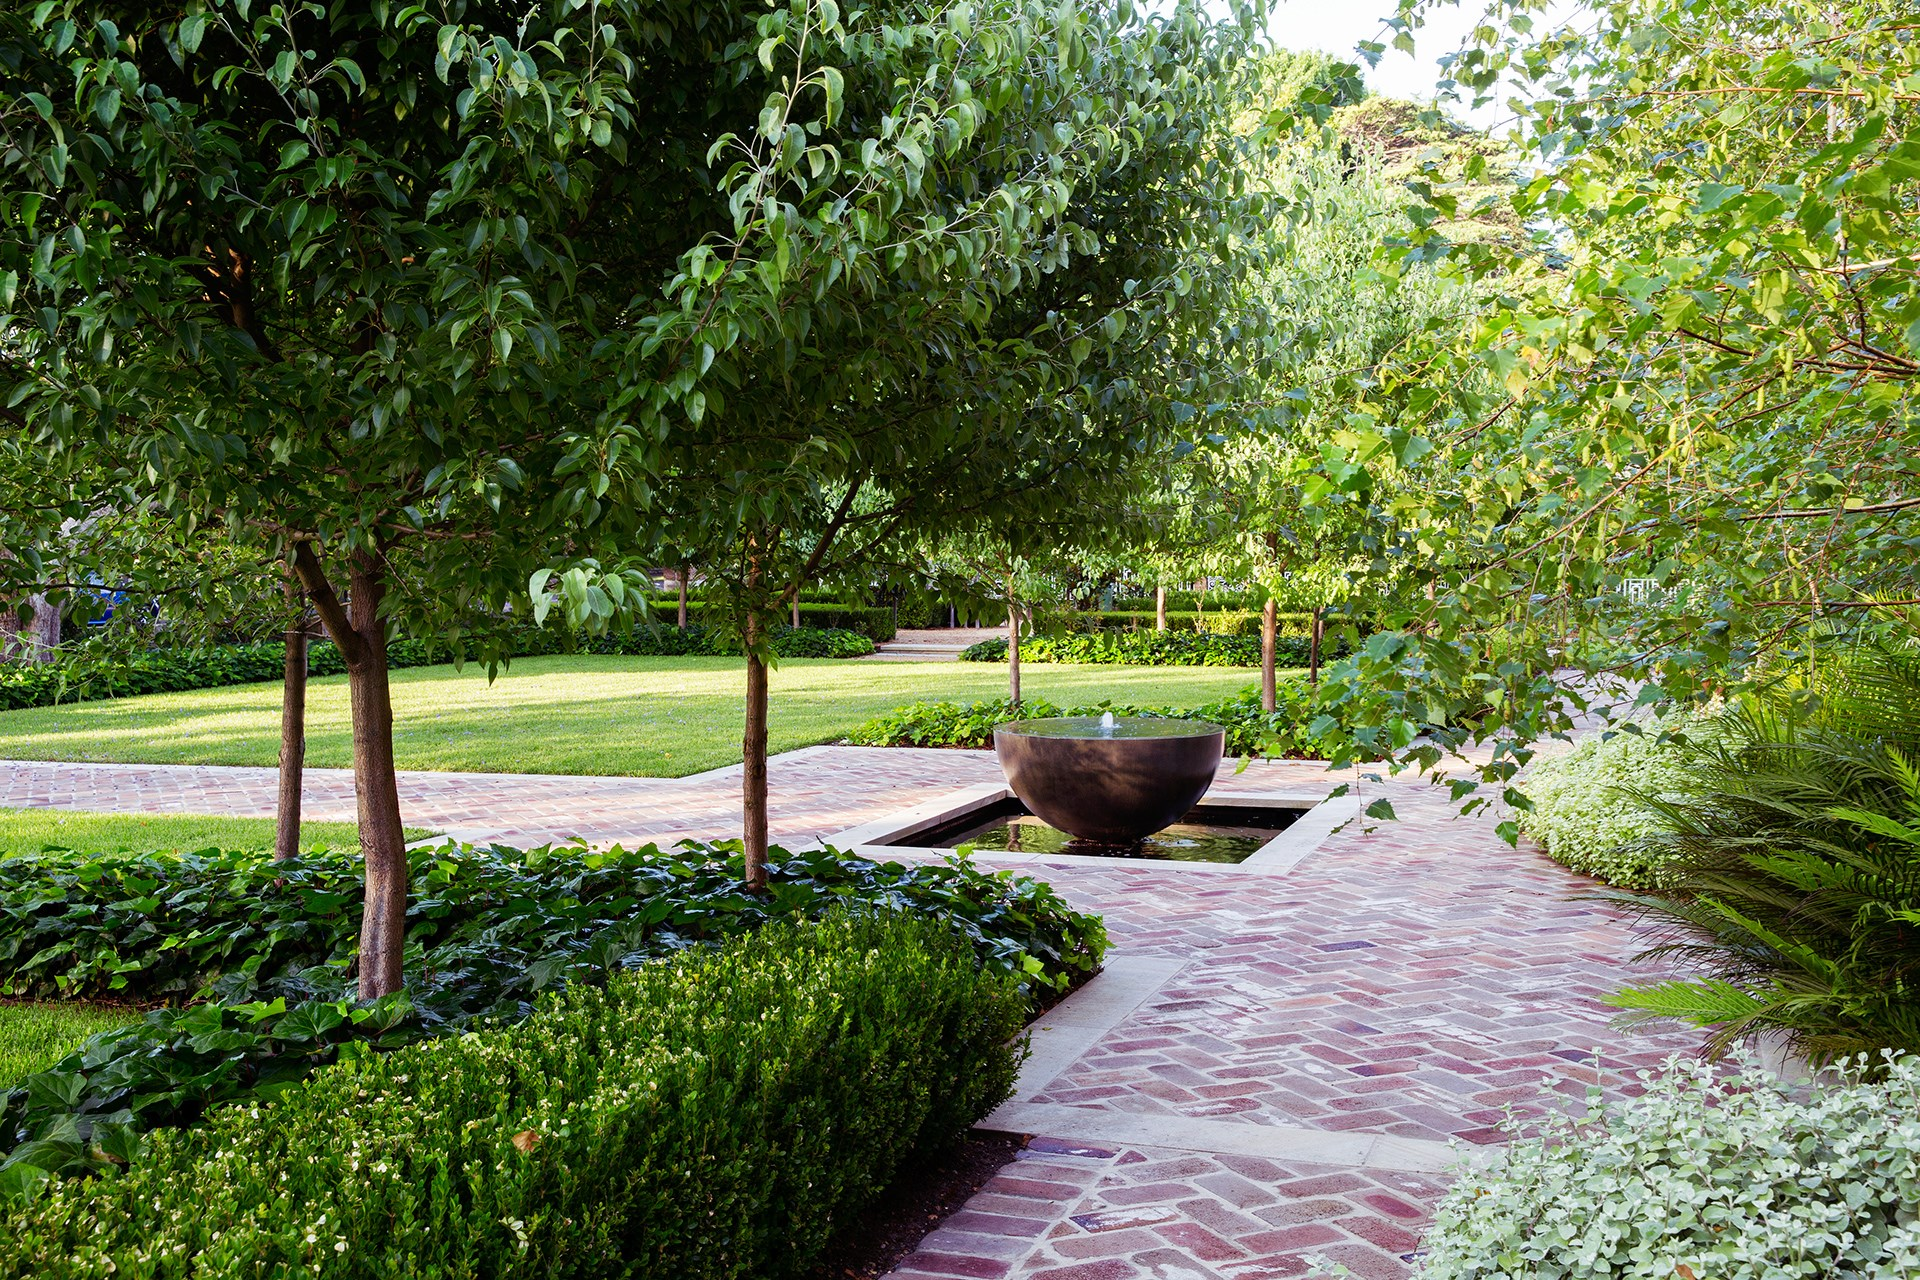 Pleached snow pear trees (Pyrus nivalis) underplanted with large-leaf ivy (Hedera felix) frame the front entry pathway and water feature.